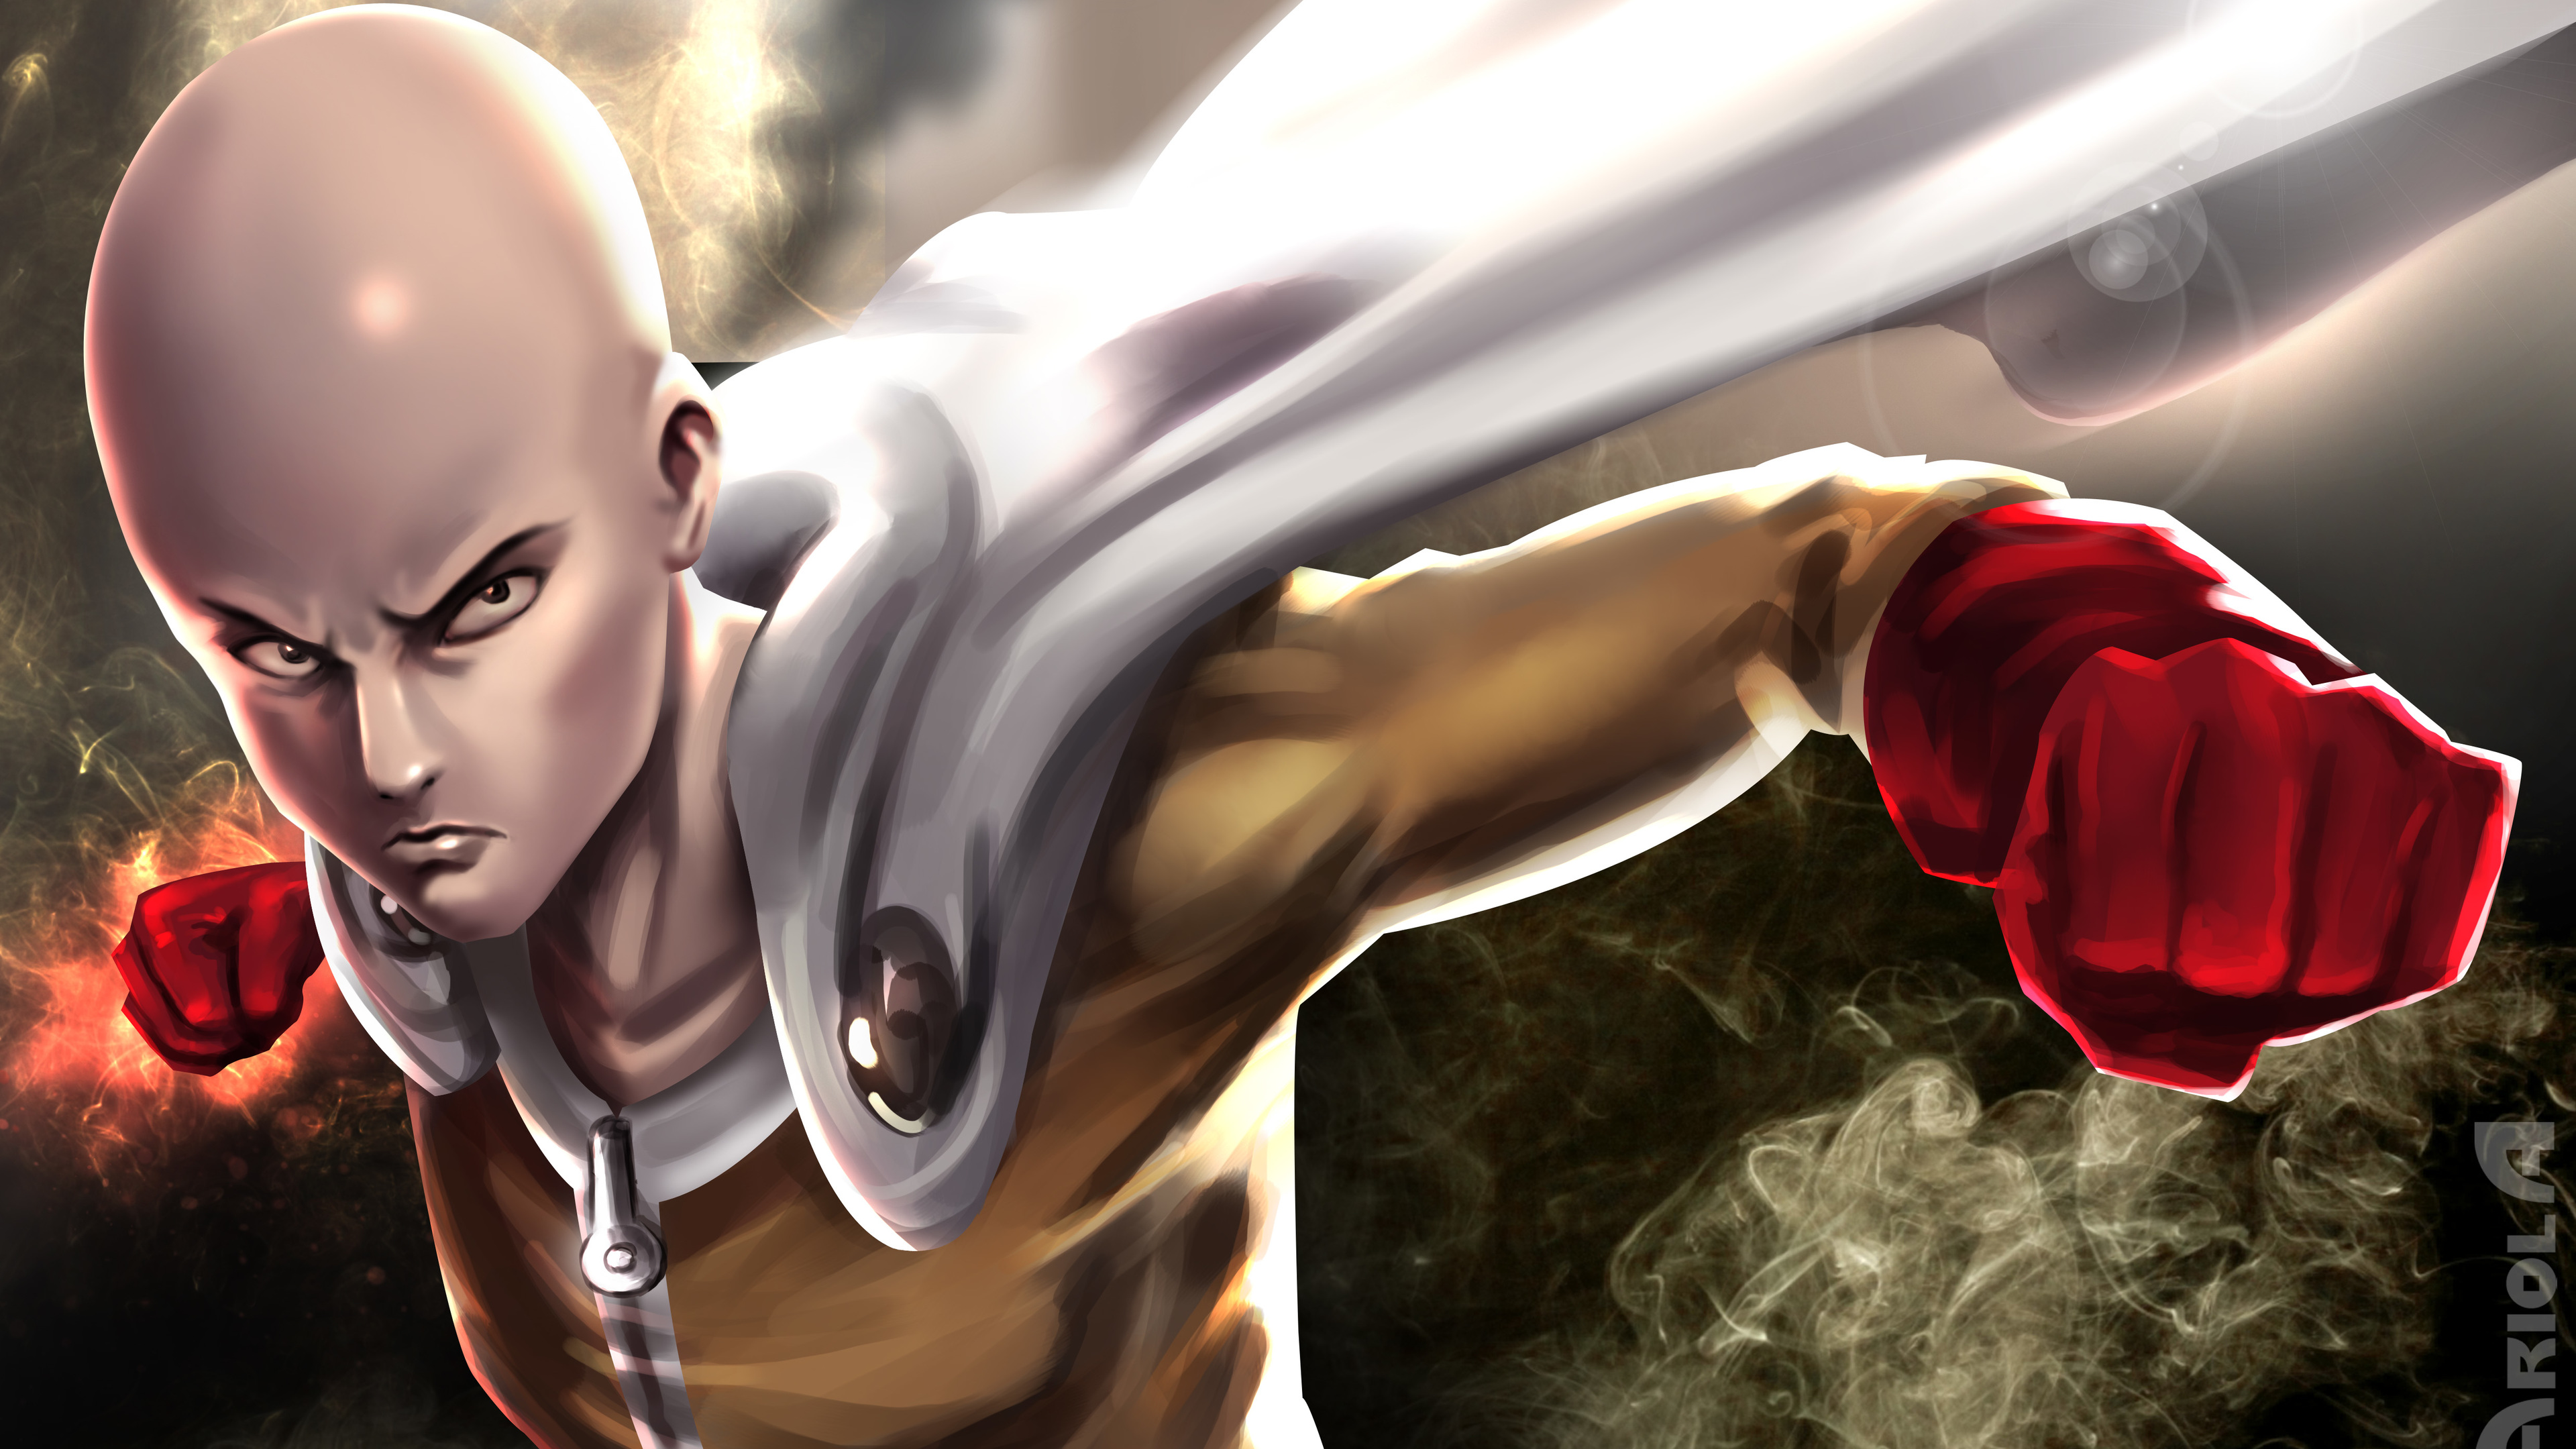 Wallpaper 4k One Punch Man 4k Art 4k Wallpapers Anime Wallpapers